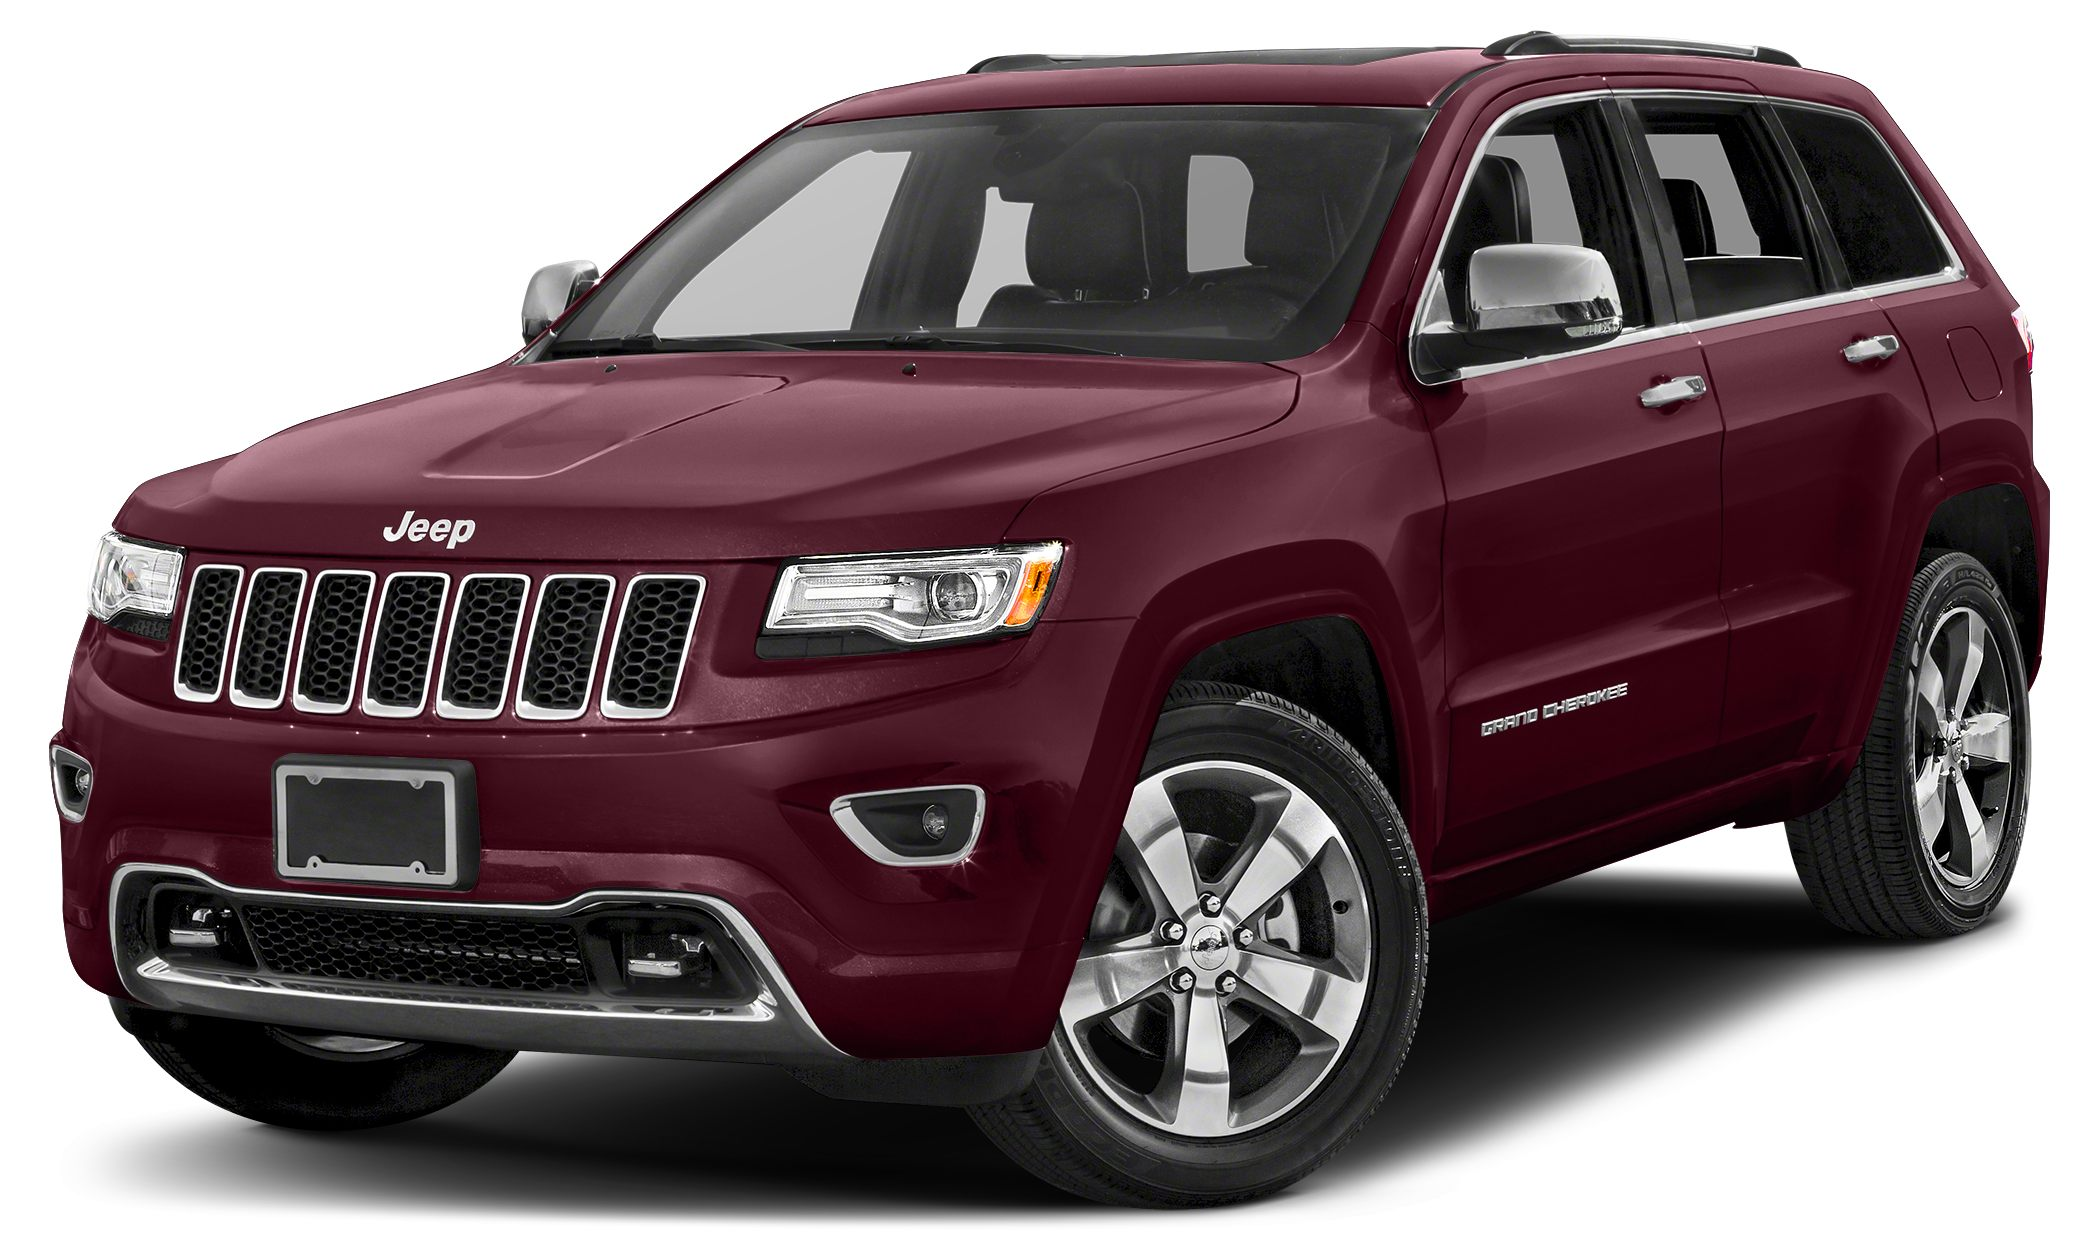 2016 Jeep Grand Cherokee Overland This amazing Grand Cherokee is just waiting to bring the right o